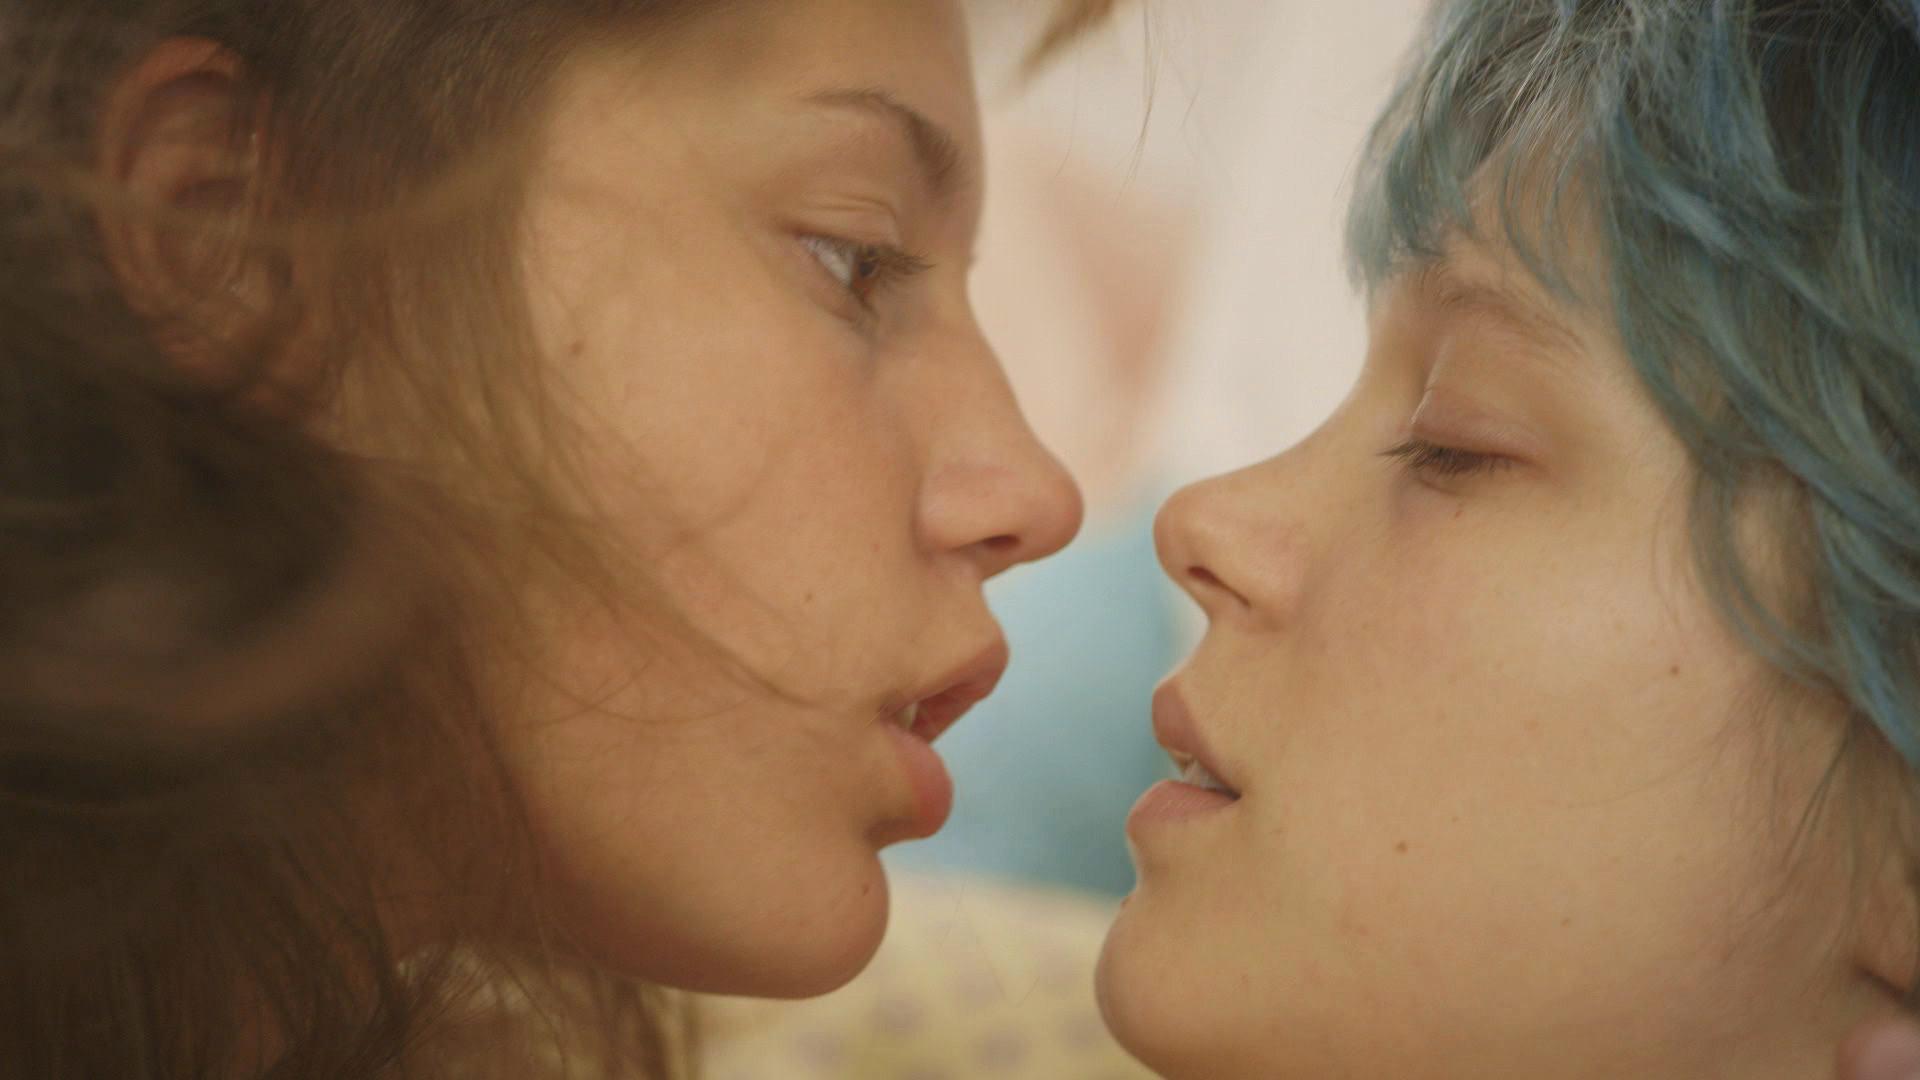 The two actresses in blue is the warmest color about to kiss